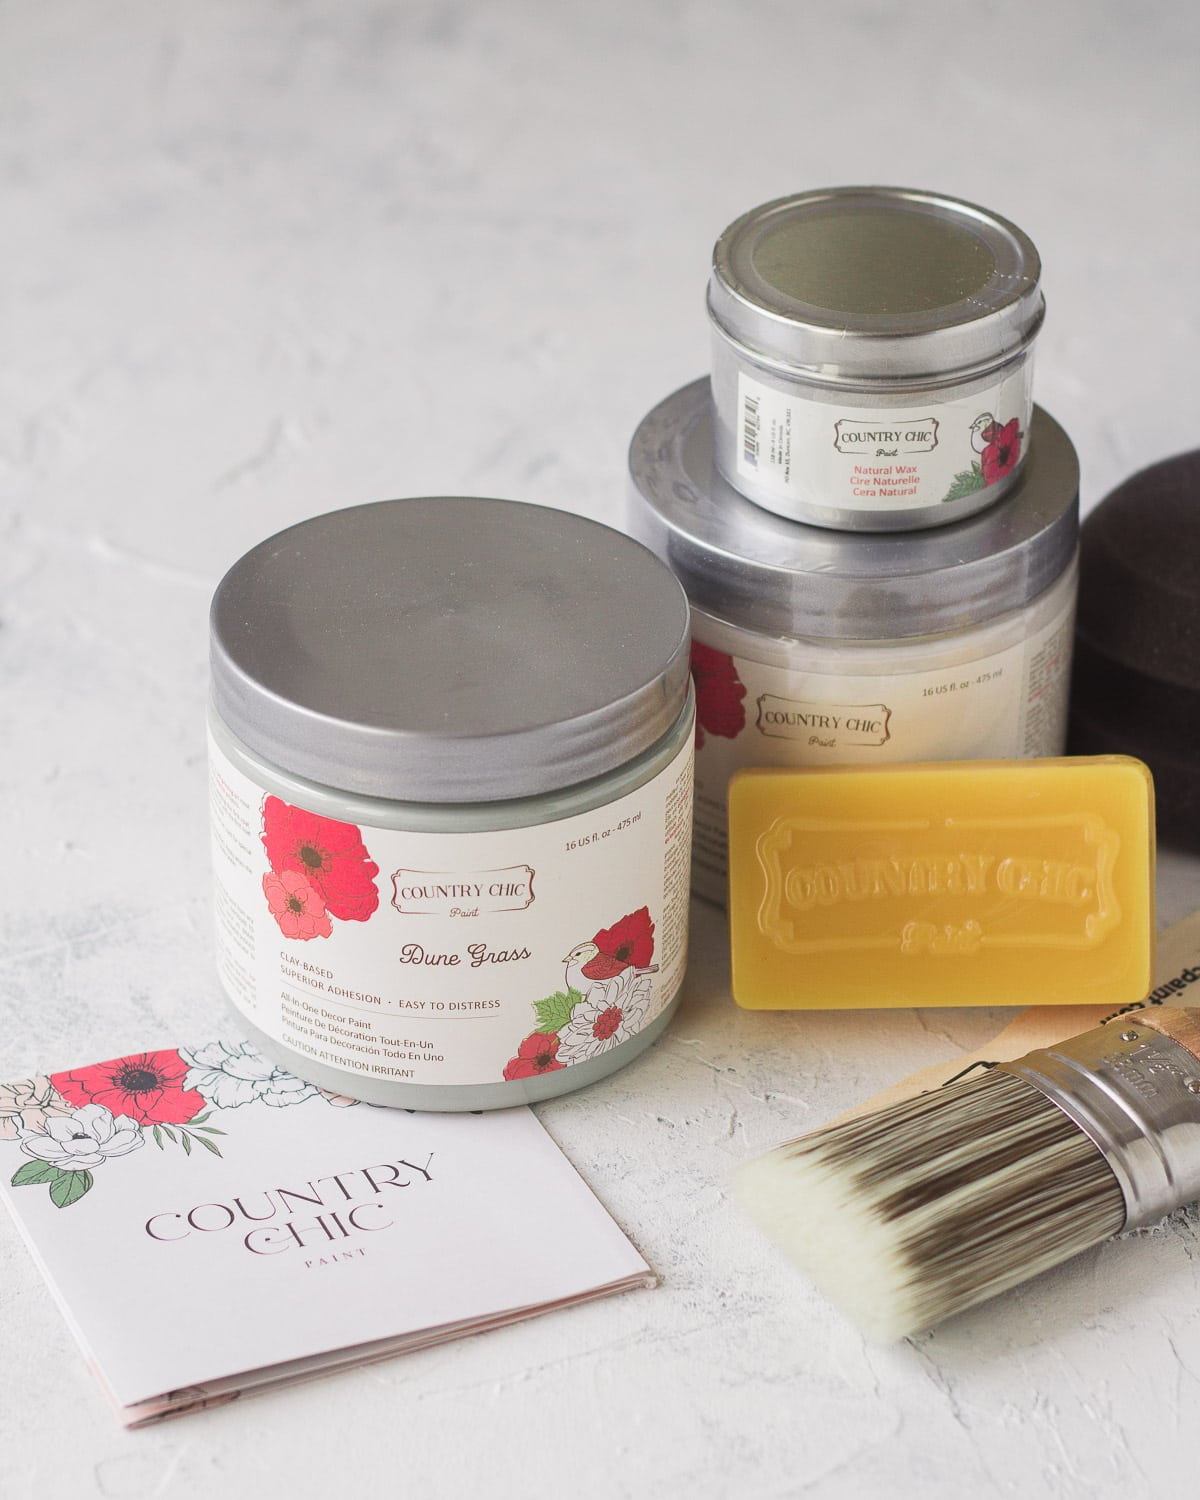 A selection of paint and supplies from Country Chic Paint.